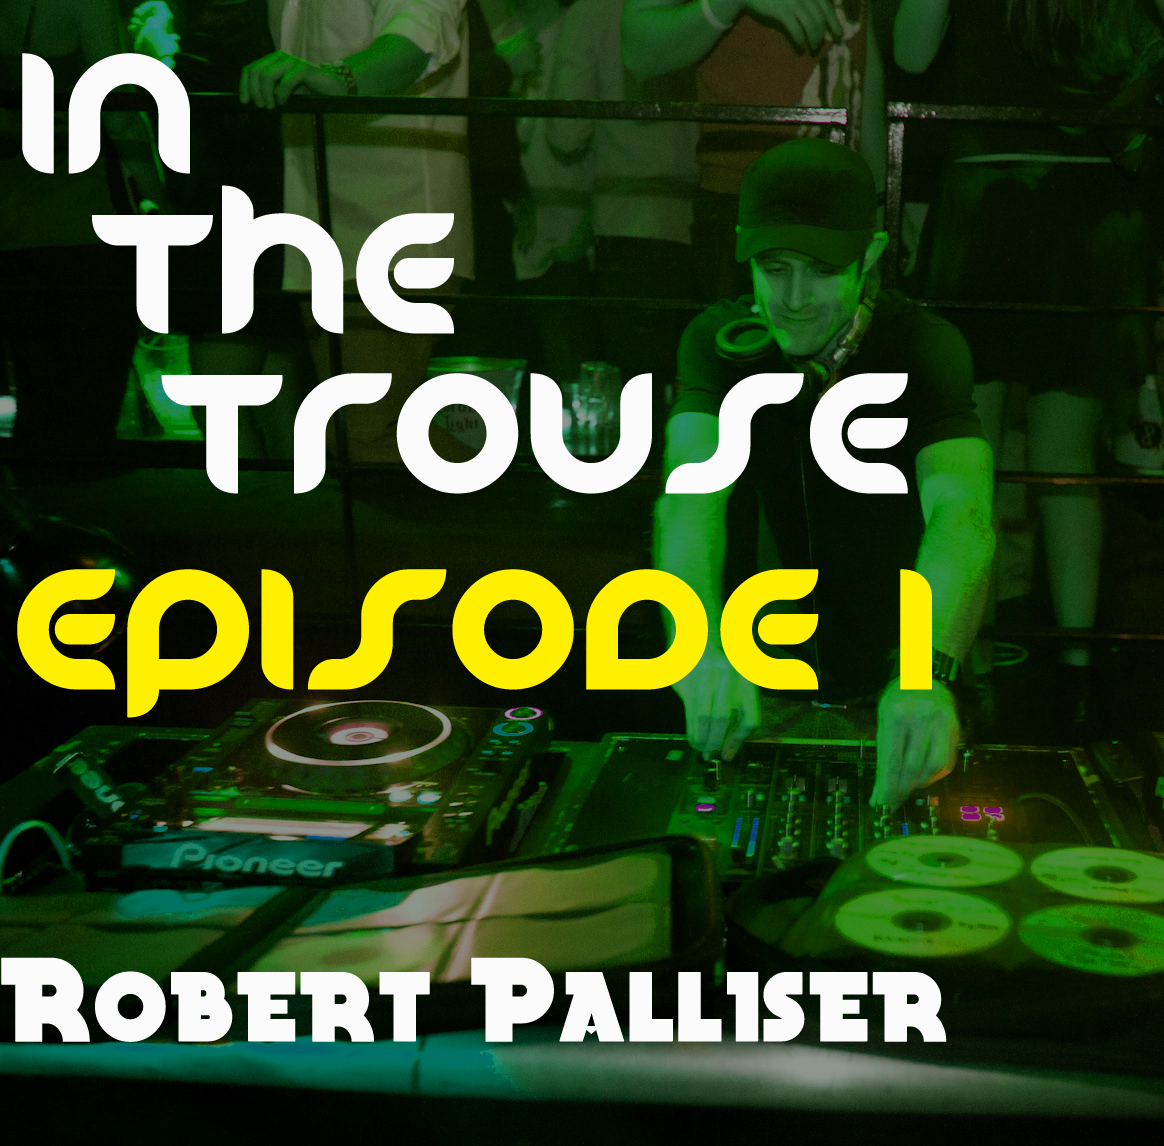 artworks 000013977854 f90bhr original EO MIX: Robert Palliser   In The Trouse: Episode 1